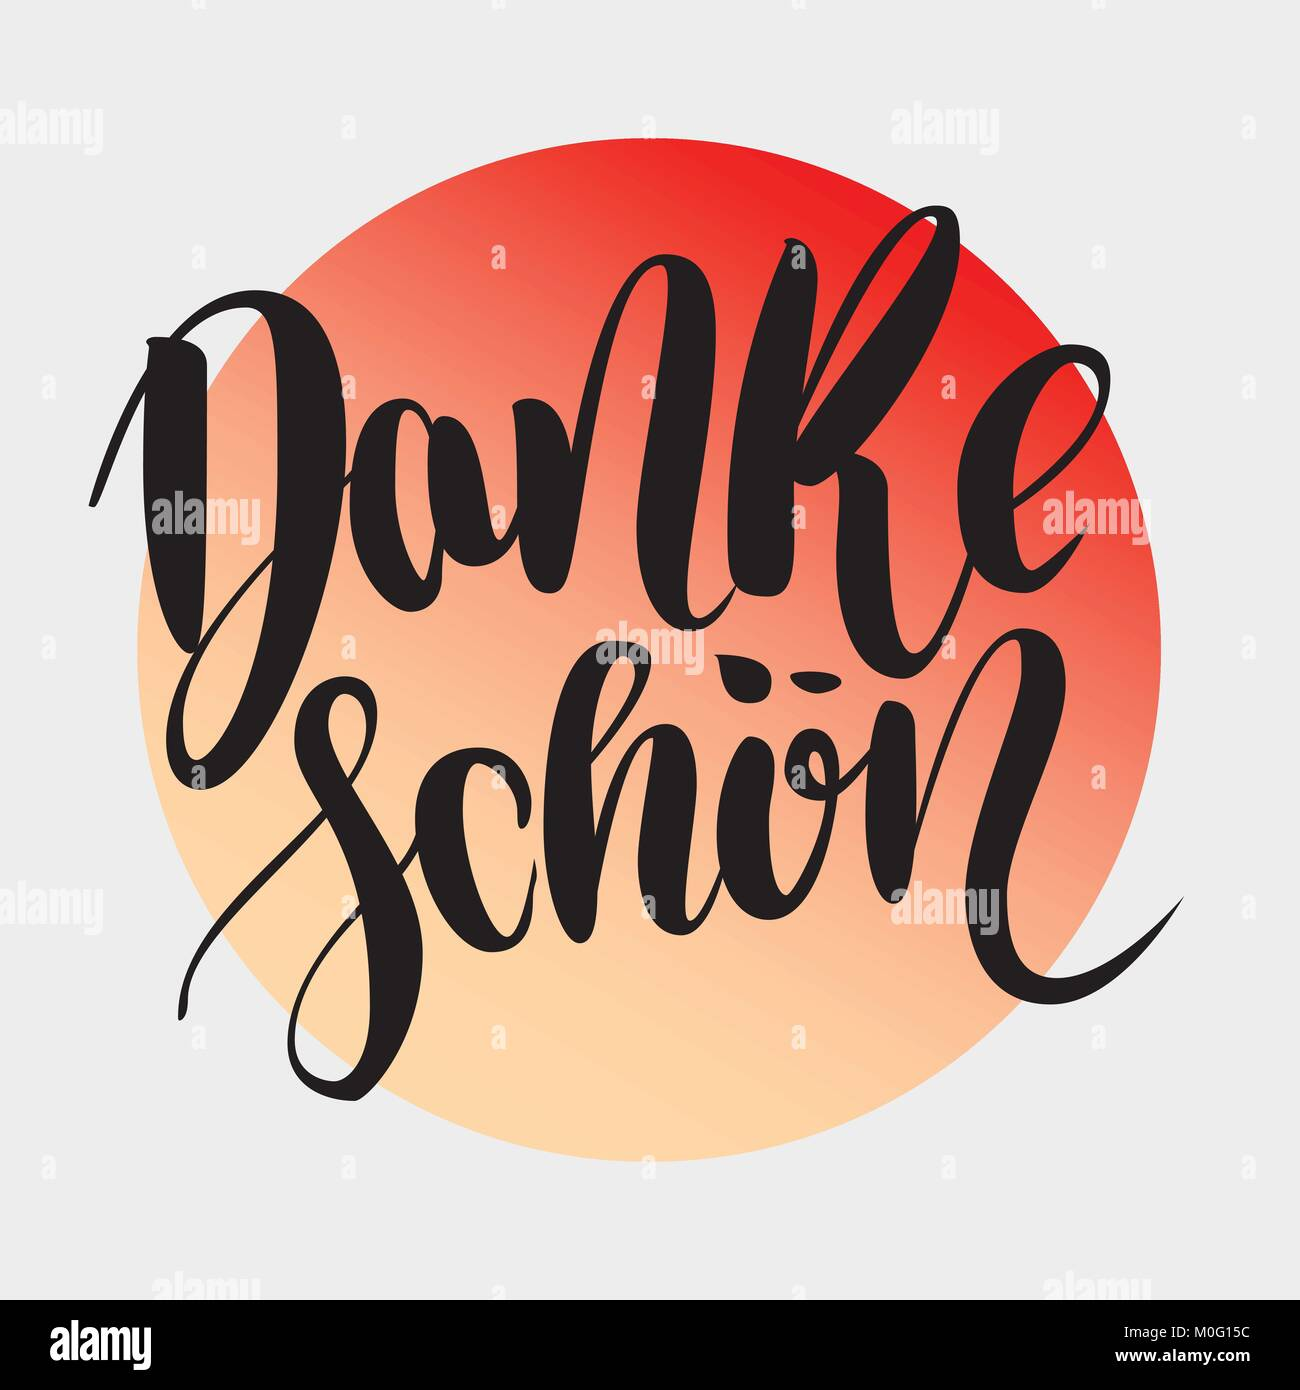 SchoenThank In Hand Brush Danke GermanVector Drawn Lettering You BoexrdC